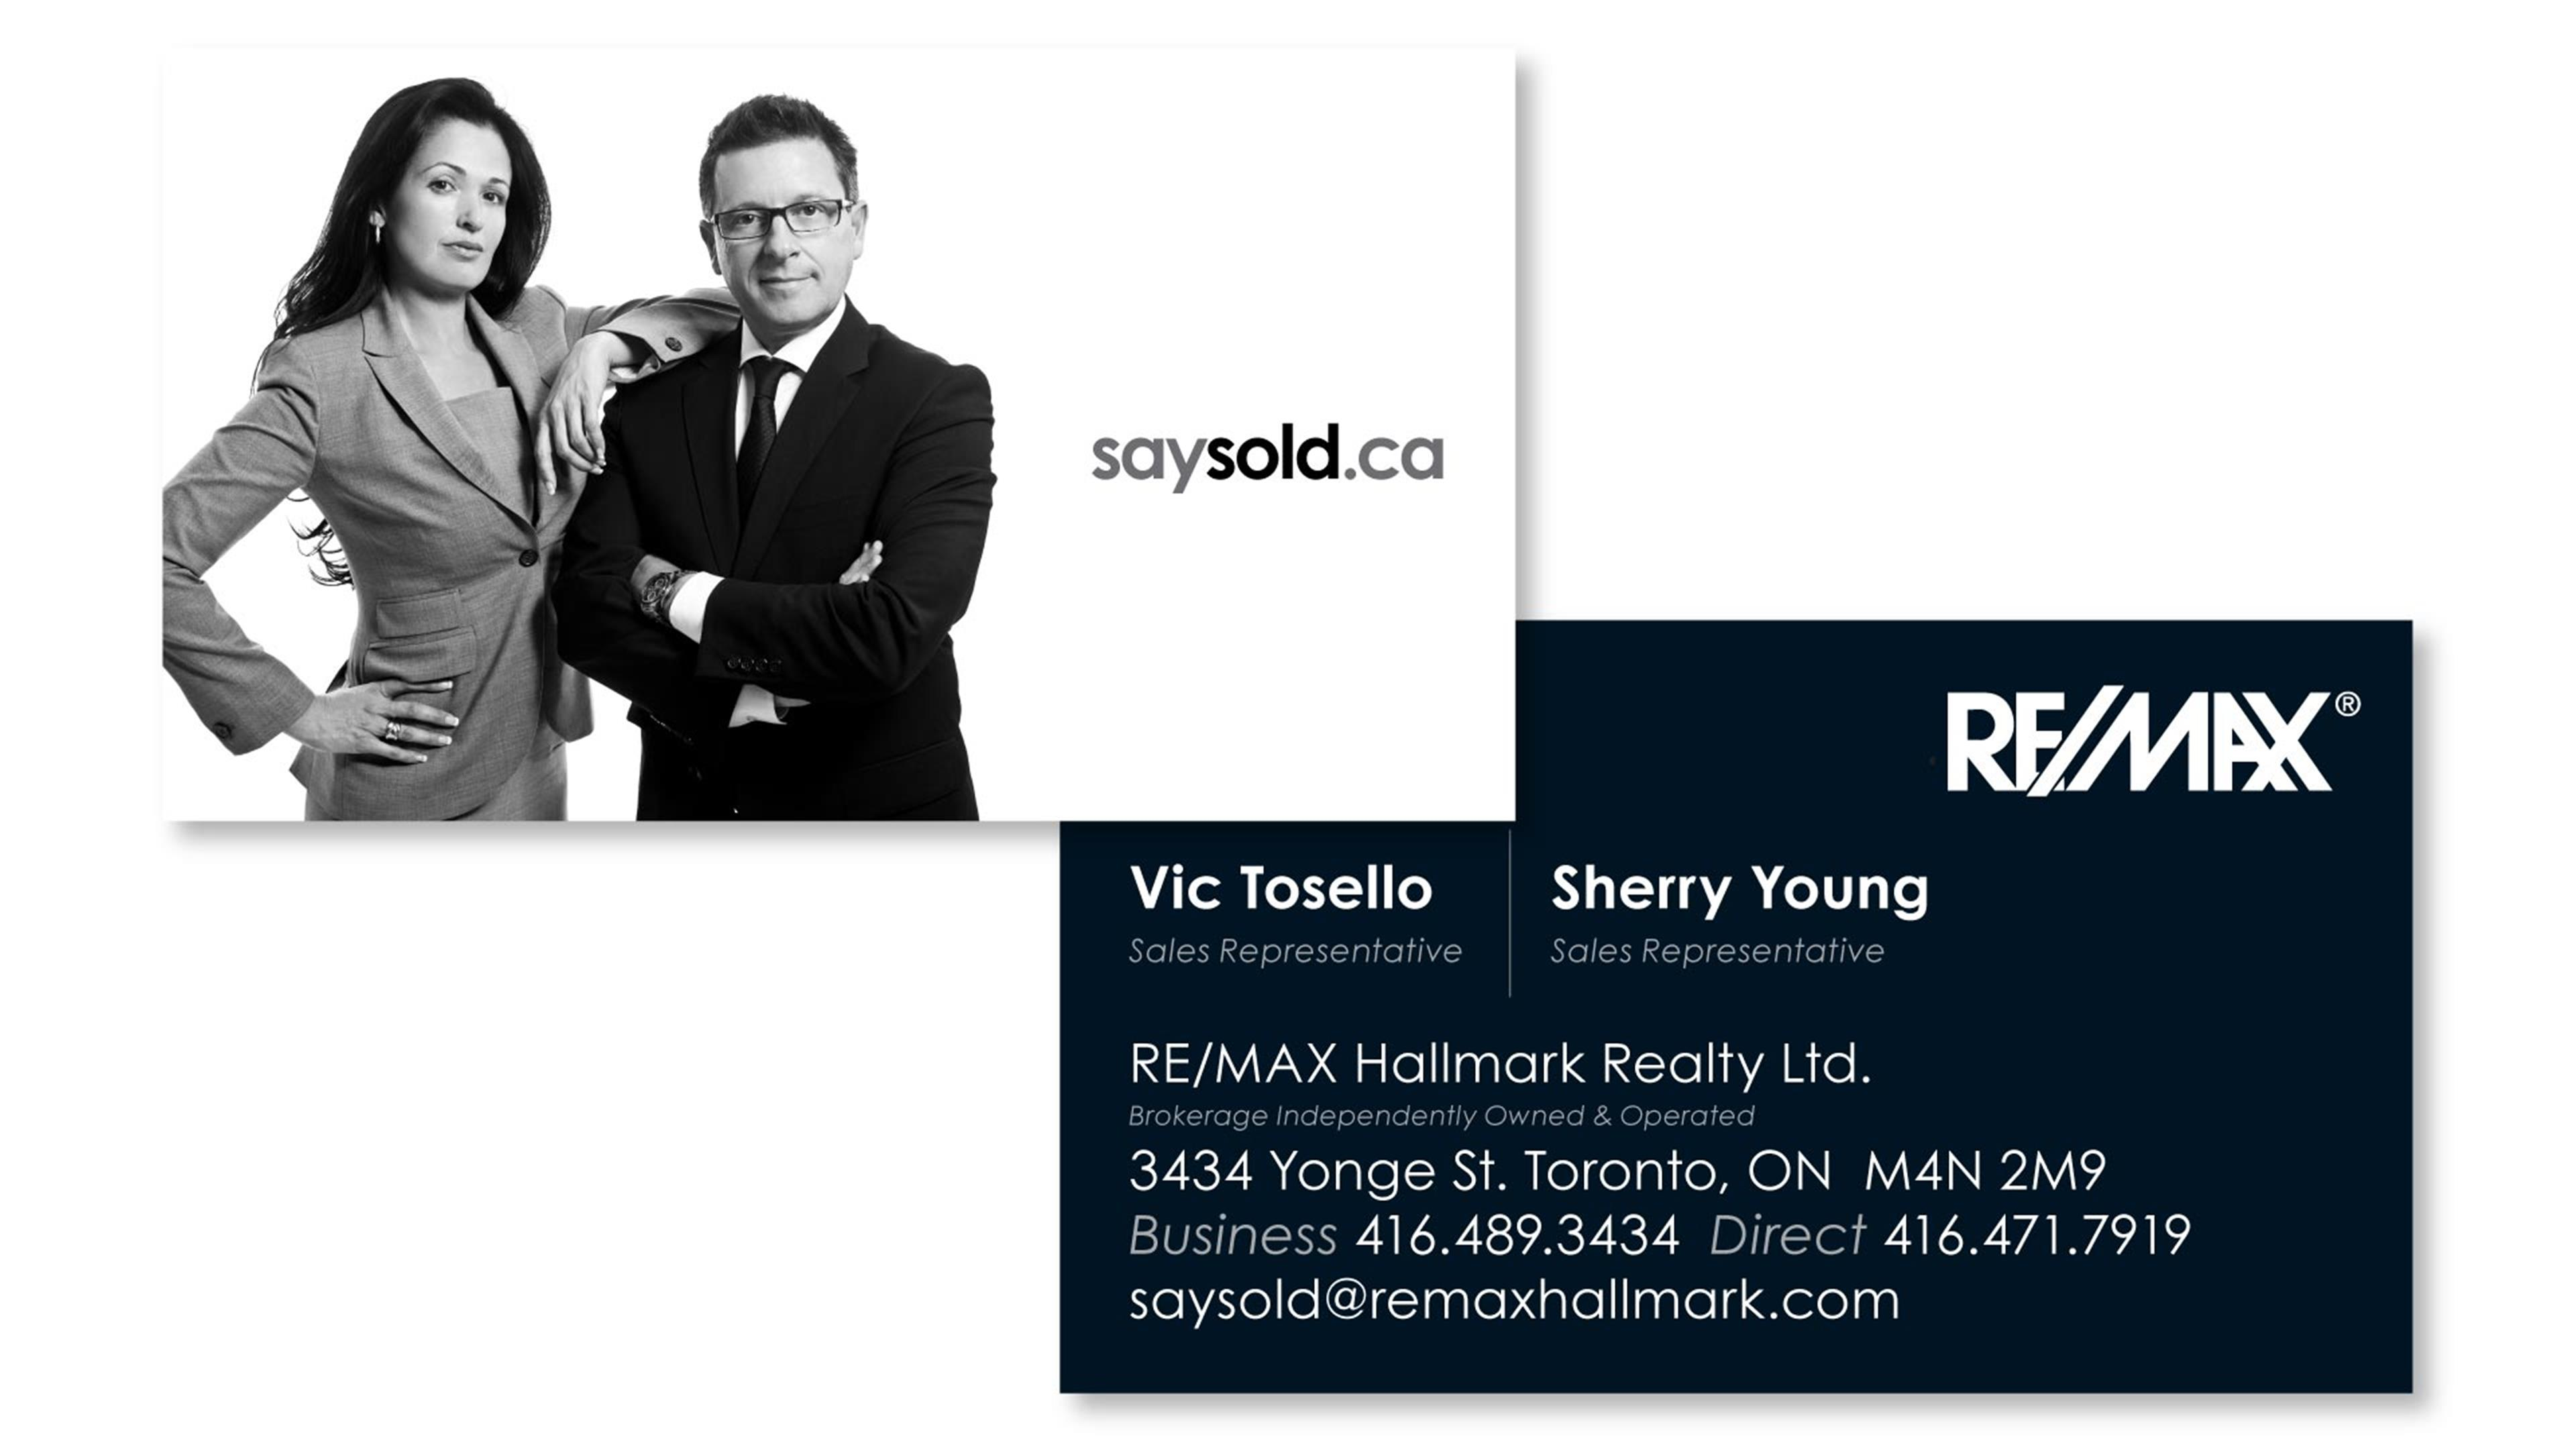 Custom business cards real estate photos marketing feature business card printed on standard stock or you are looking to produce something on more elaborate materials the skys the limit reheart Image collections